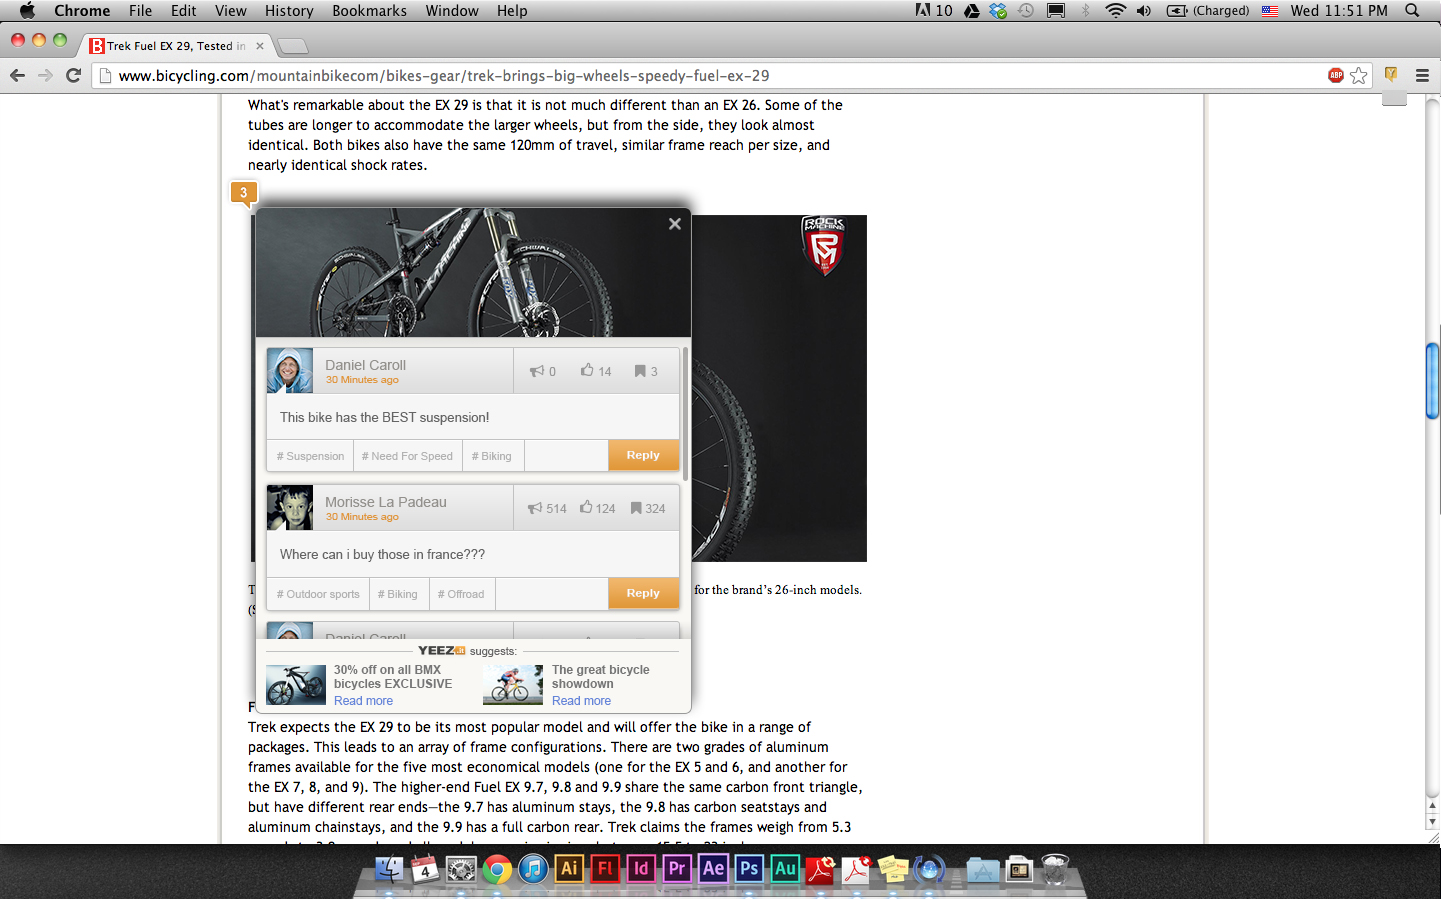 There are three sections to this image: 1. The condensed image; the user has clicked on the image and is using YEEZ.it to comment/ 2. There are two visible comments and one below the fold. 3. Content and ad recommendations; on the bottom line there are links to content and ads related to the selected bicycle image at top.